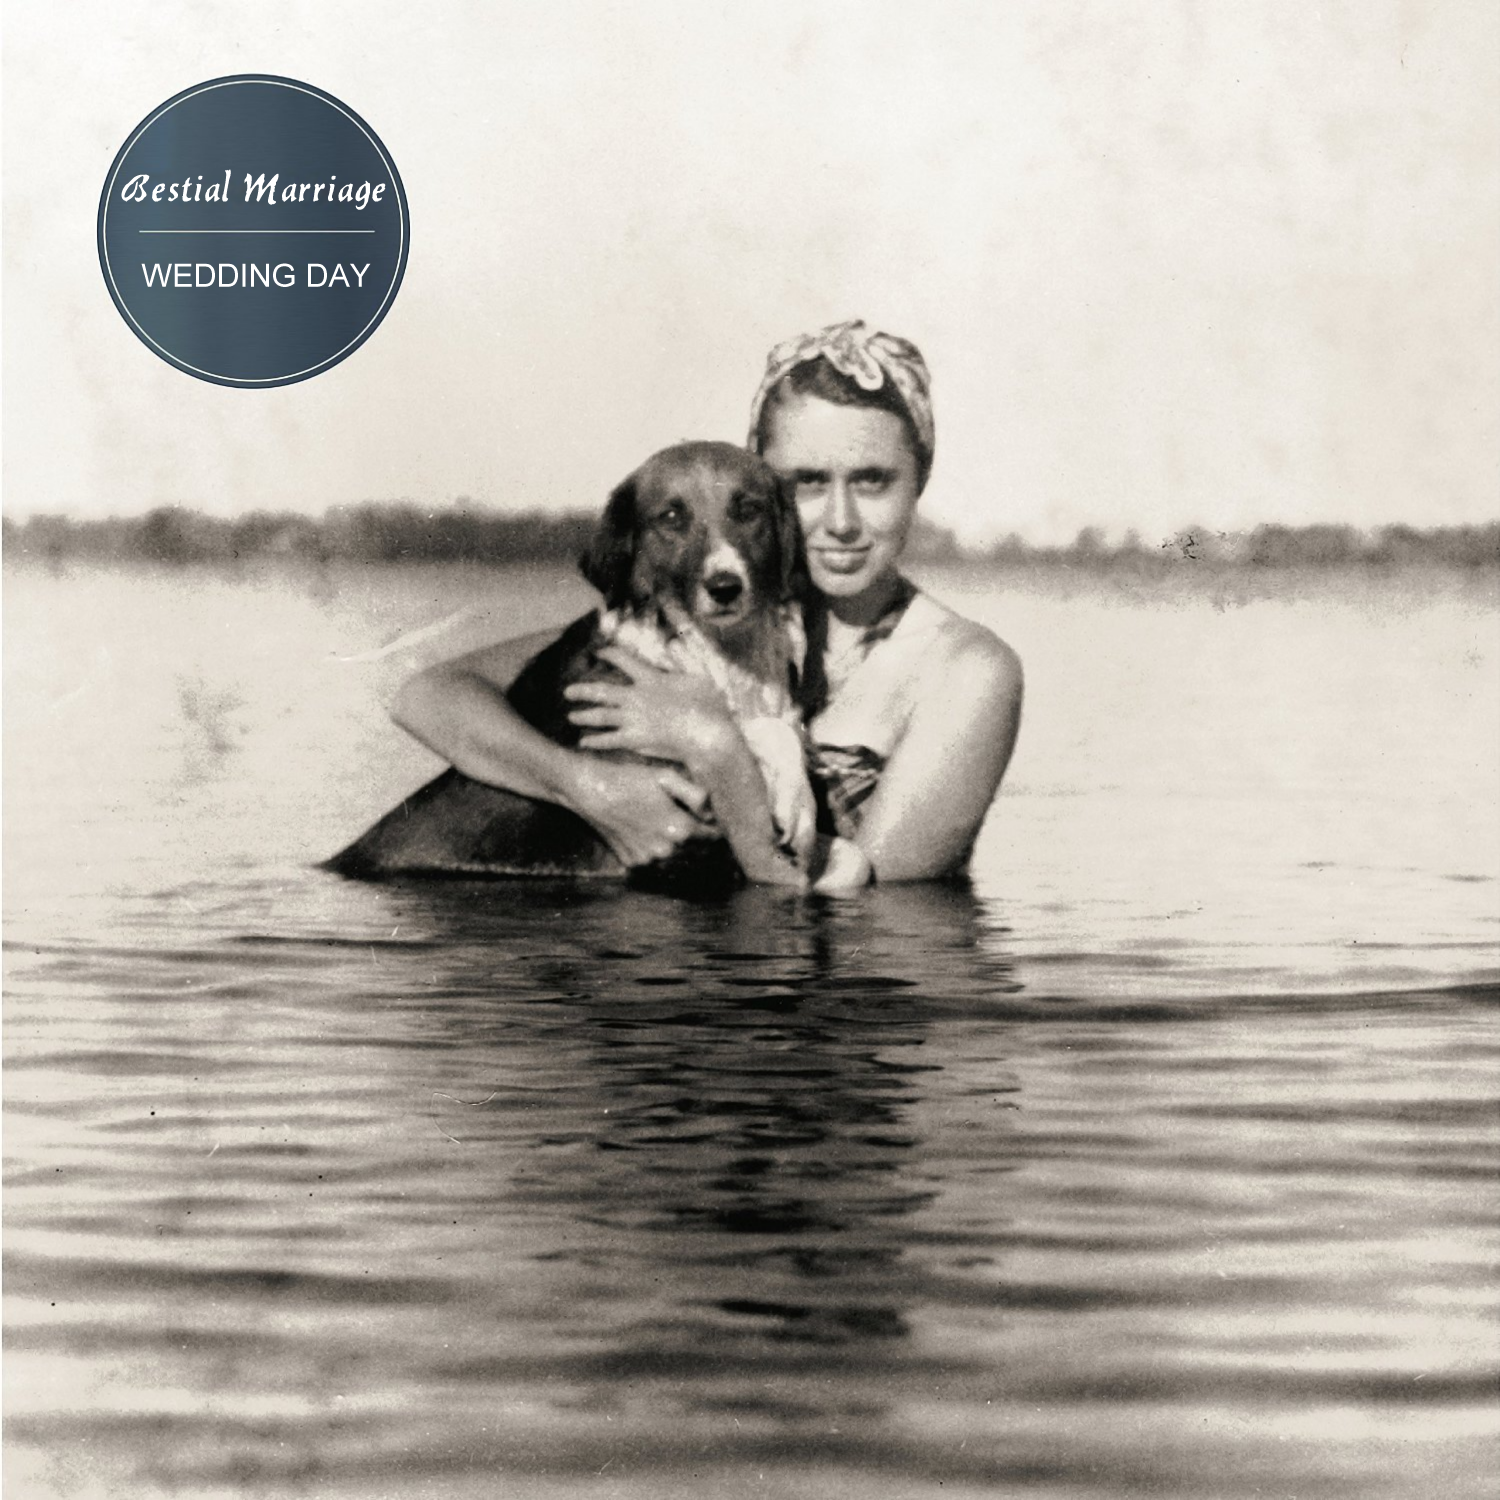 Album cover parody of The Best Day by Thurston Moore